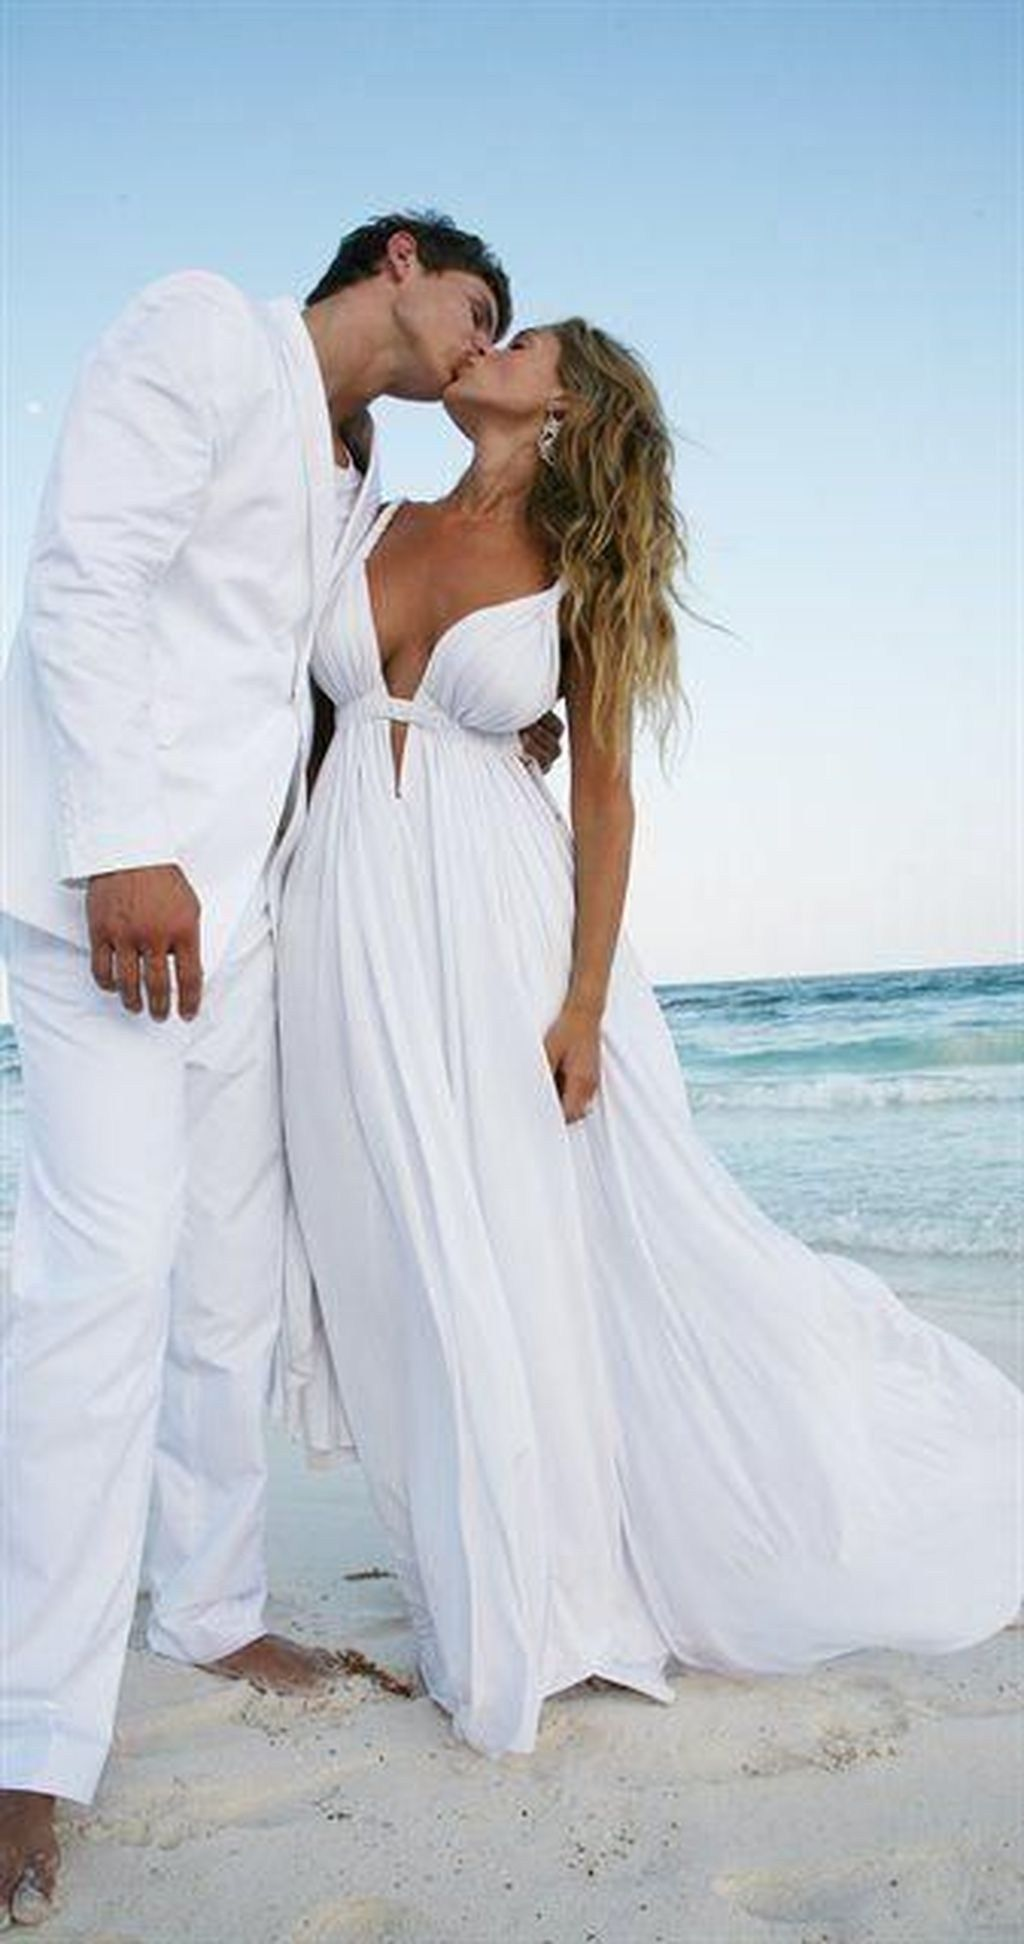 Awesome beach wedding dresses ideas ueclassy wedding dresses